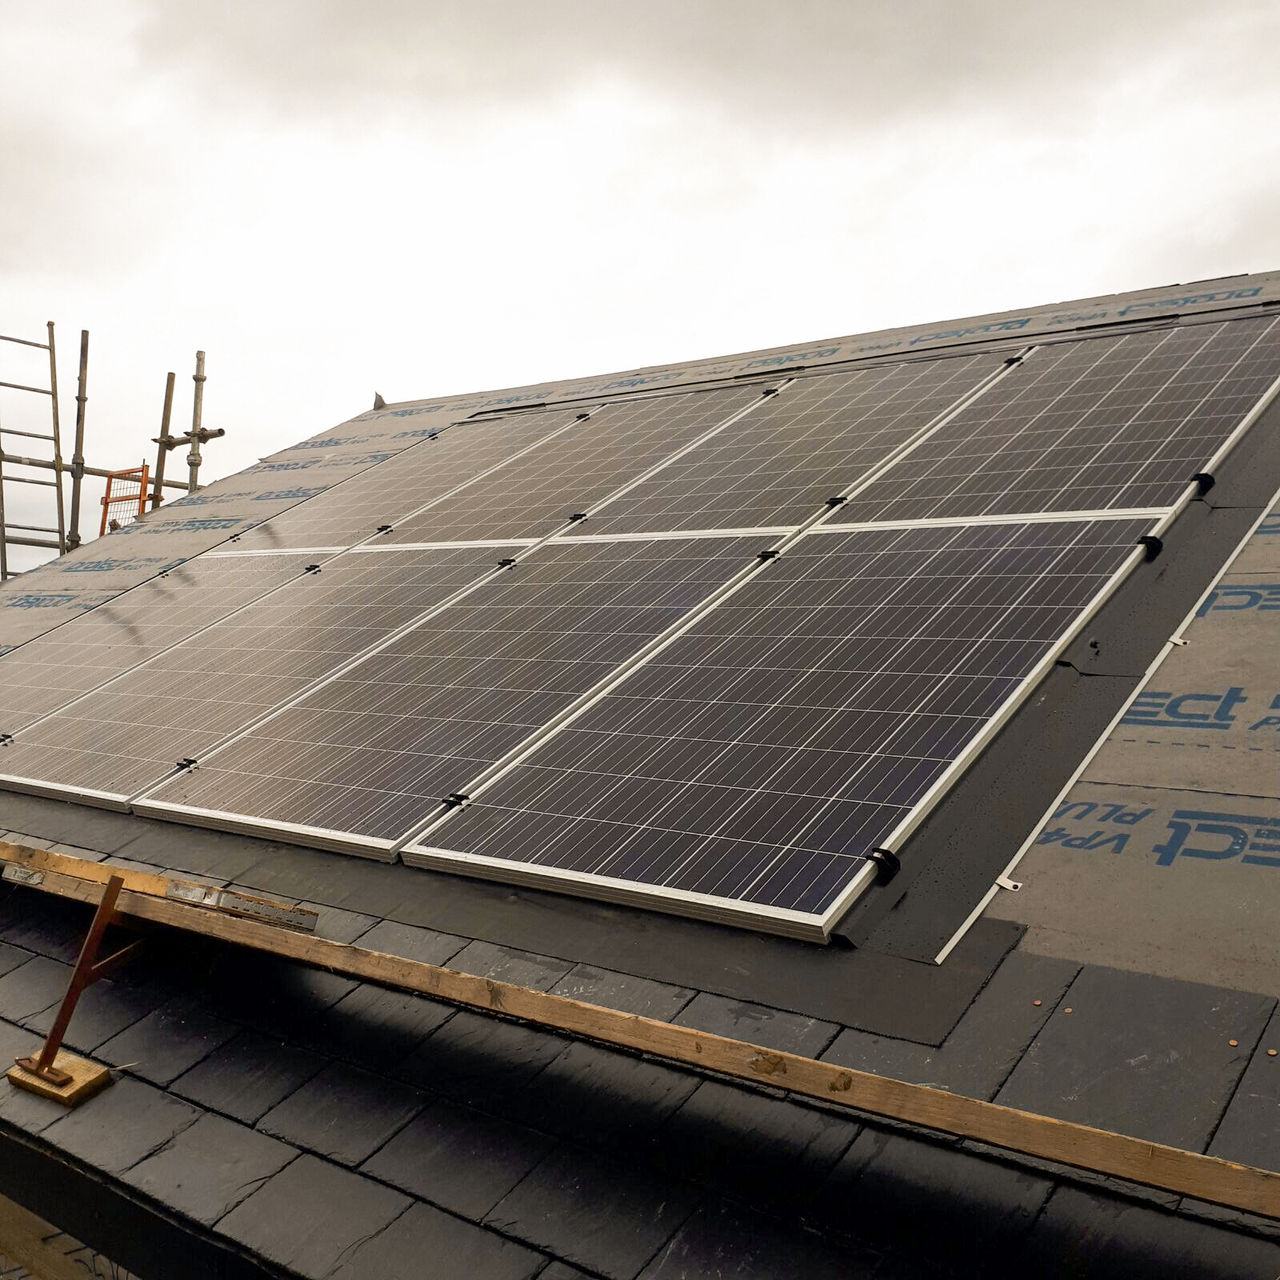 AES Solar panels being installed on a residential property